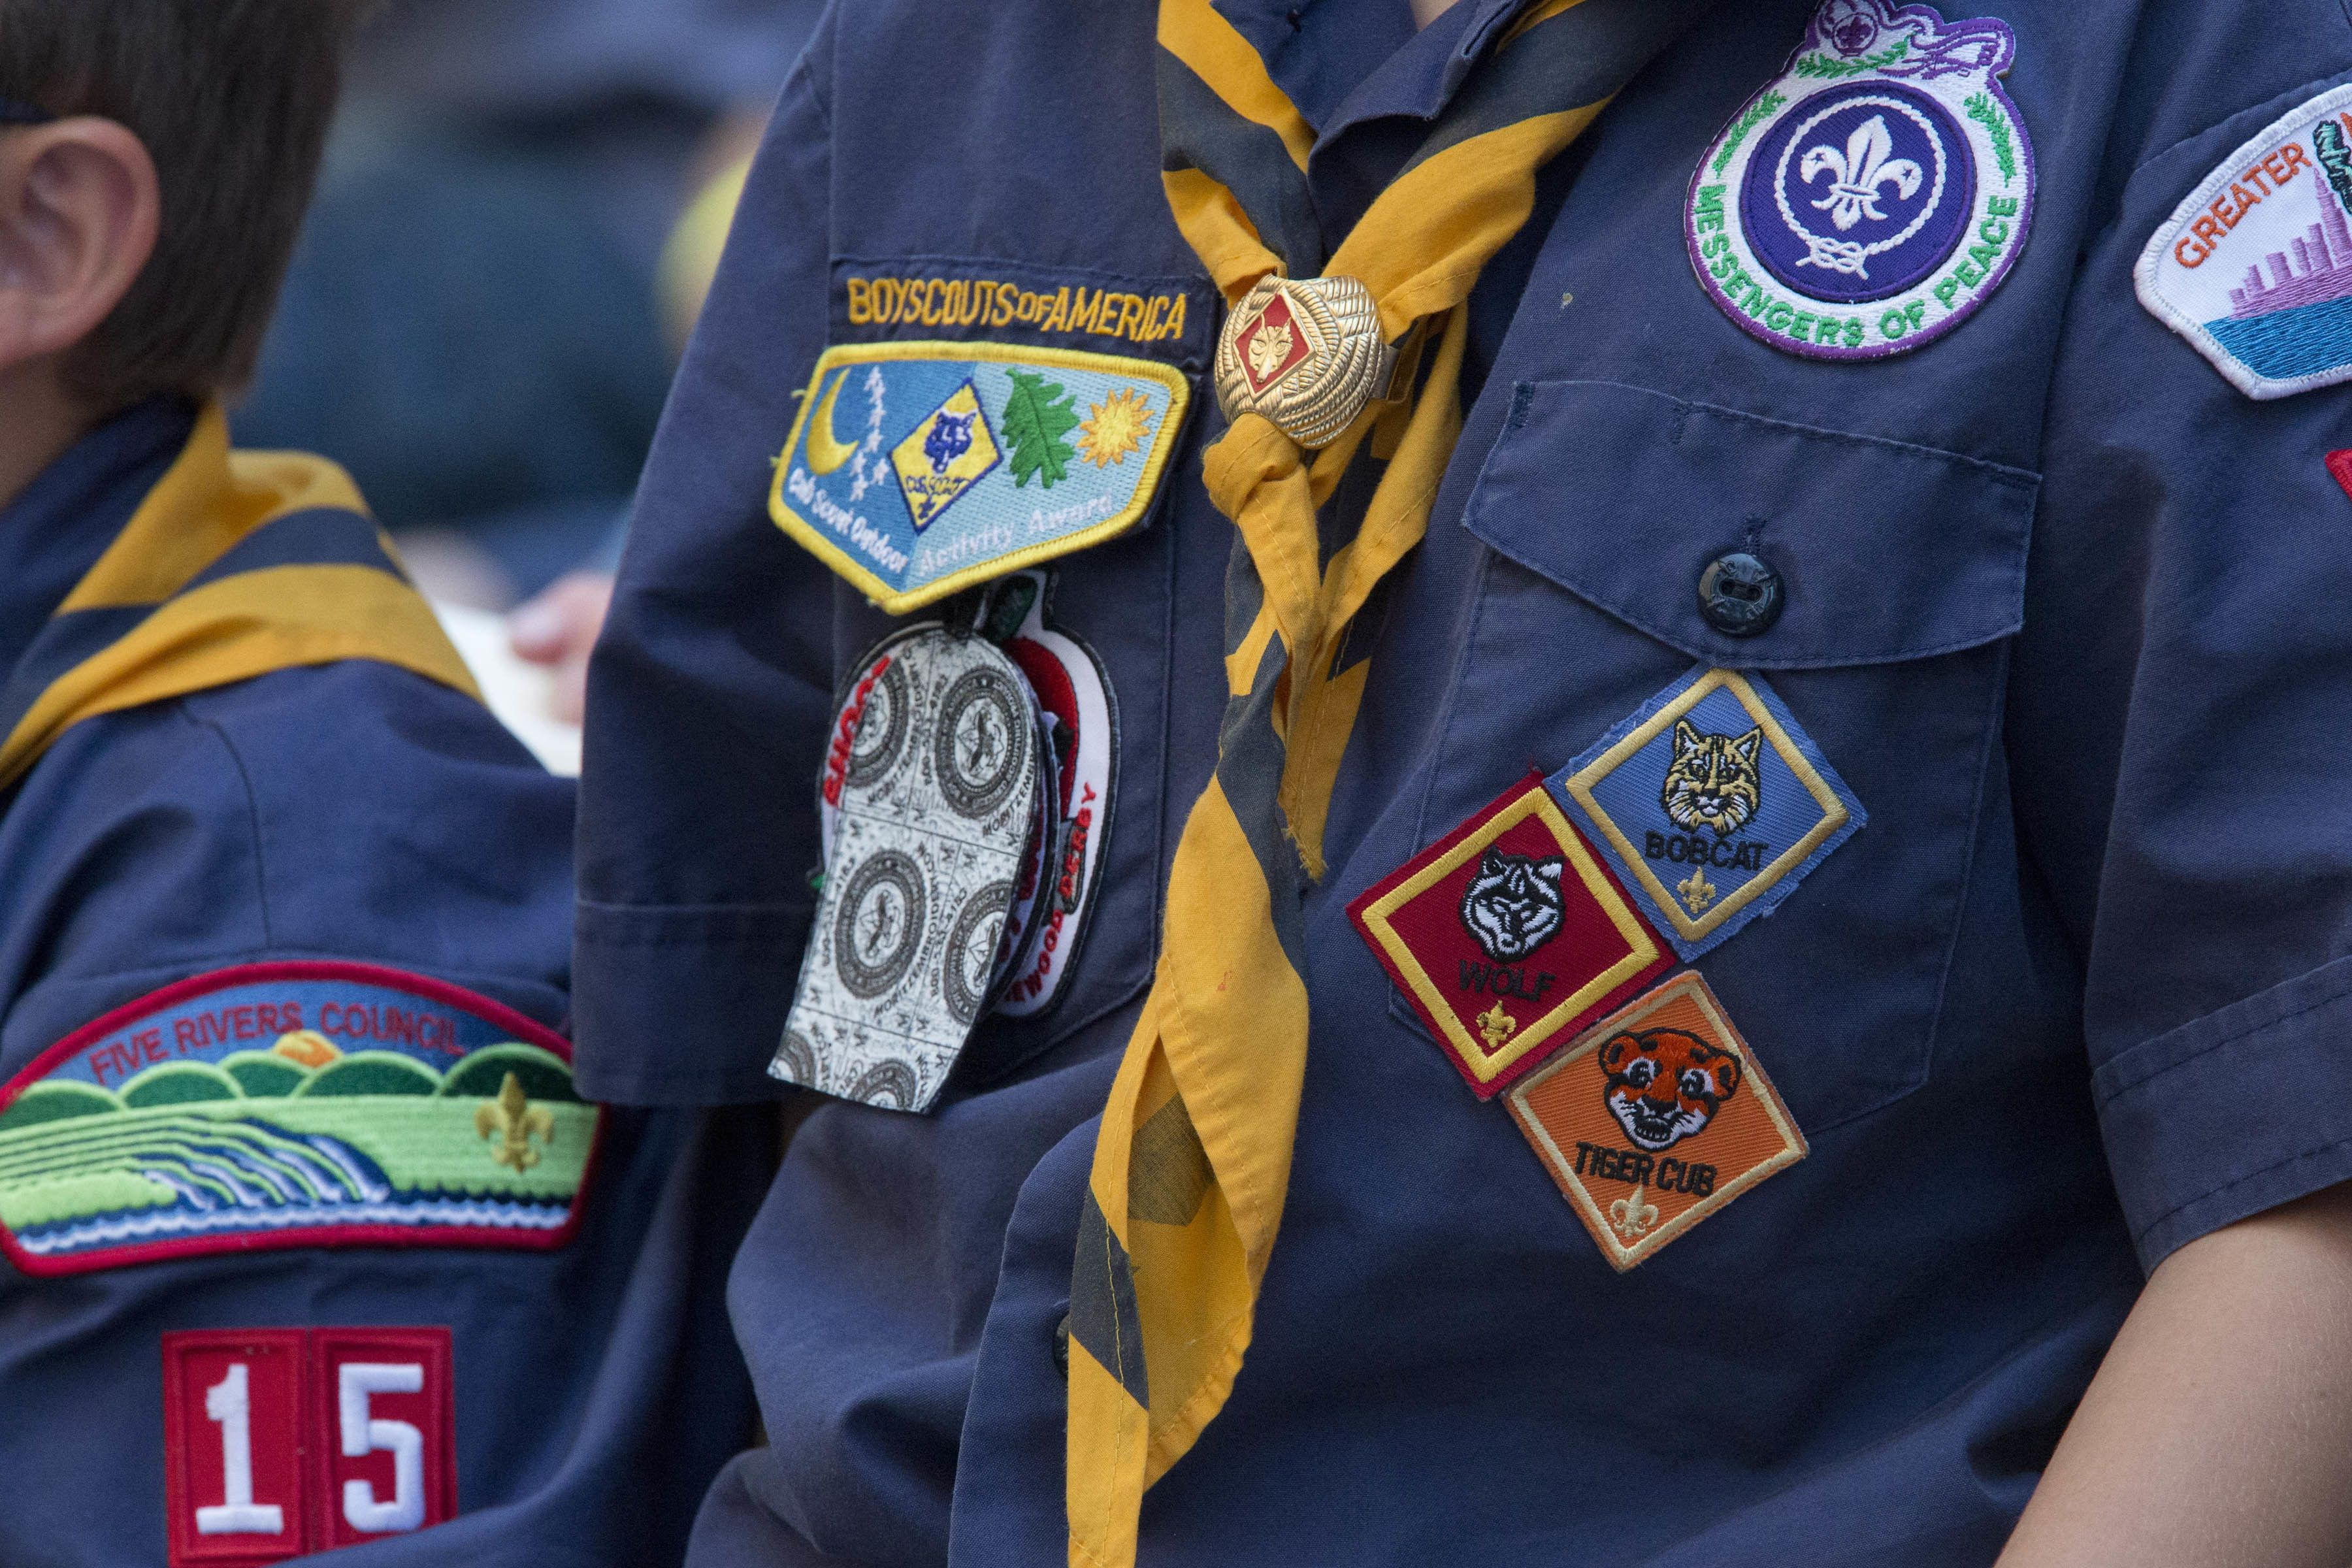 The Boy Scouts Will Now Allow Transgender Kids to Join